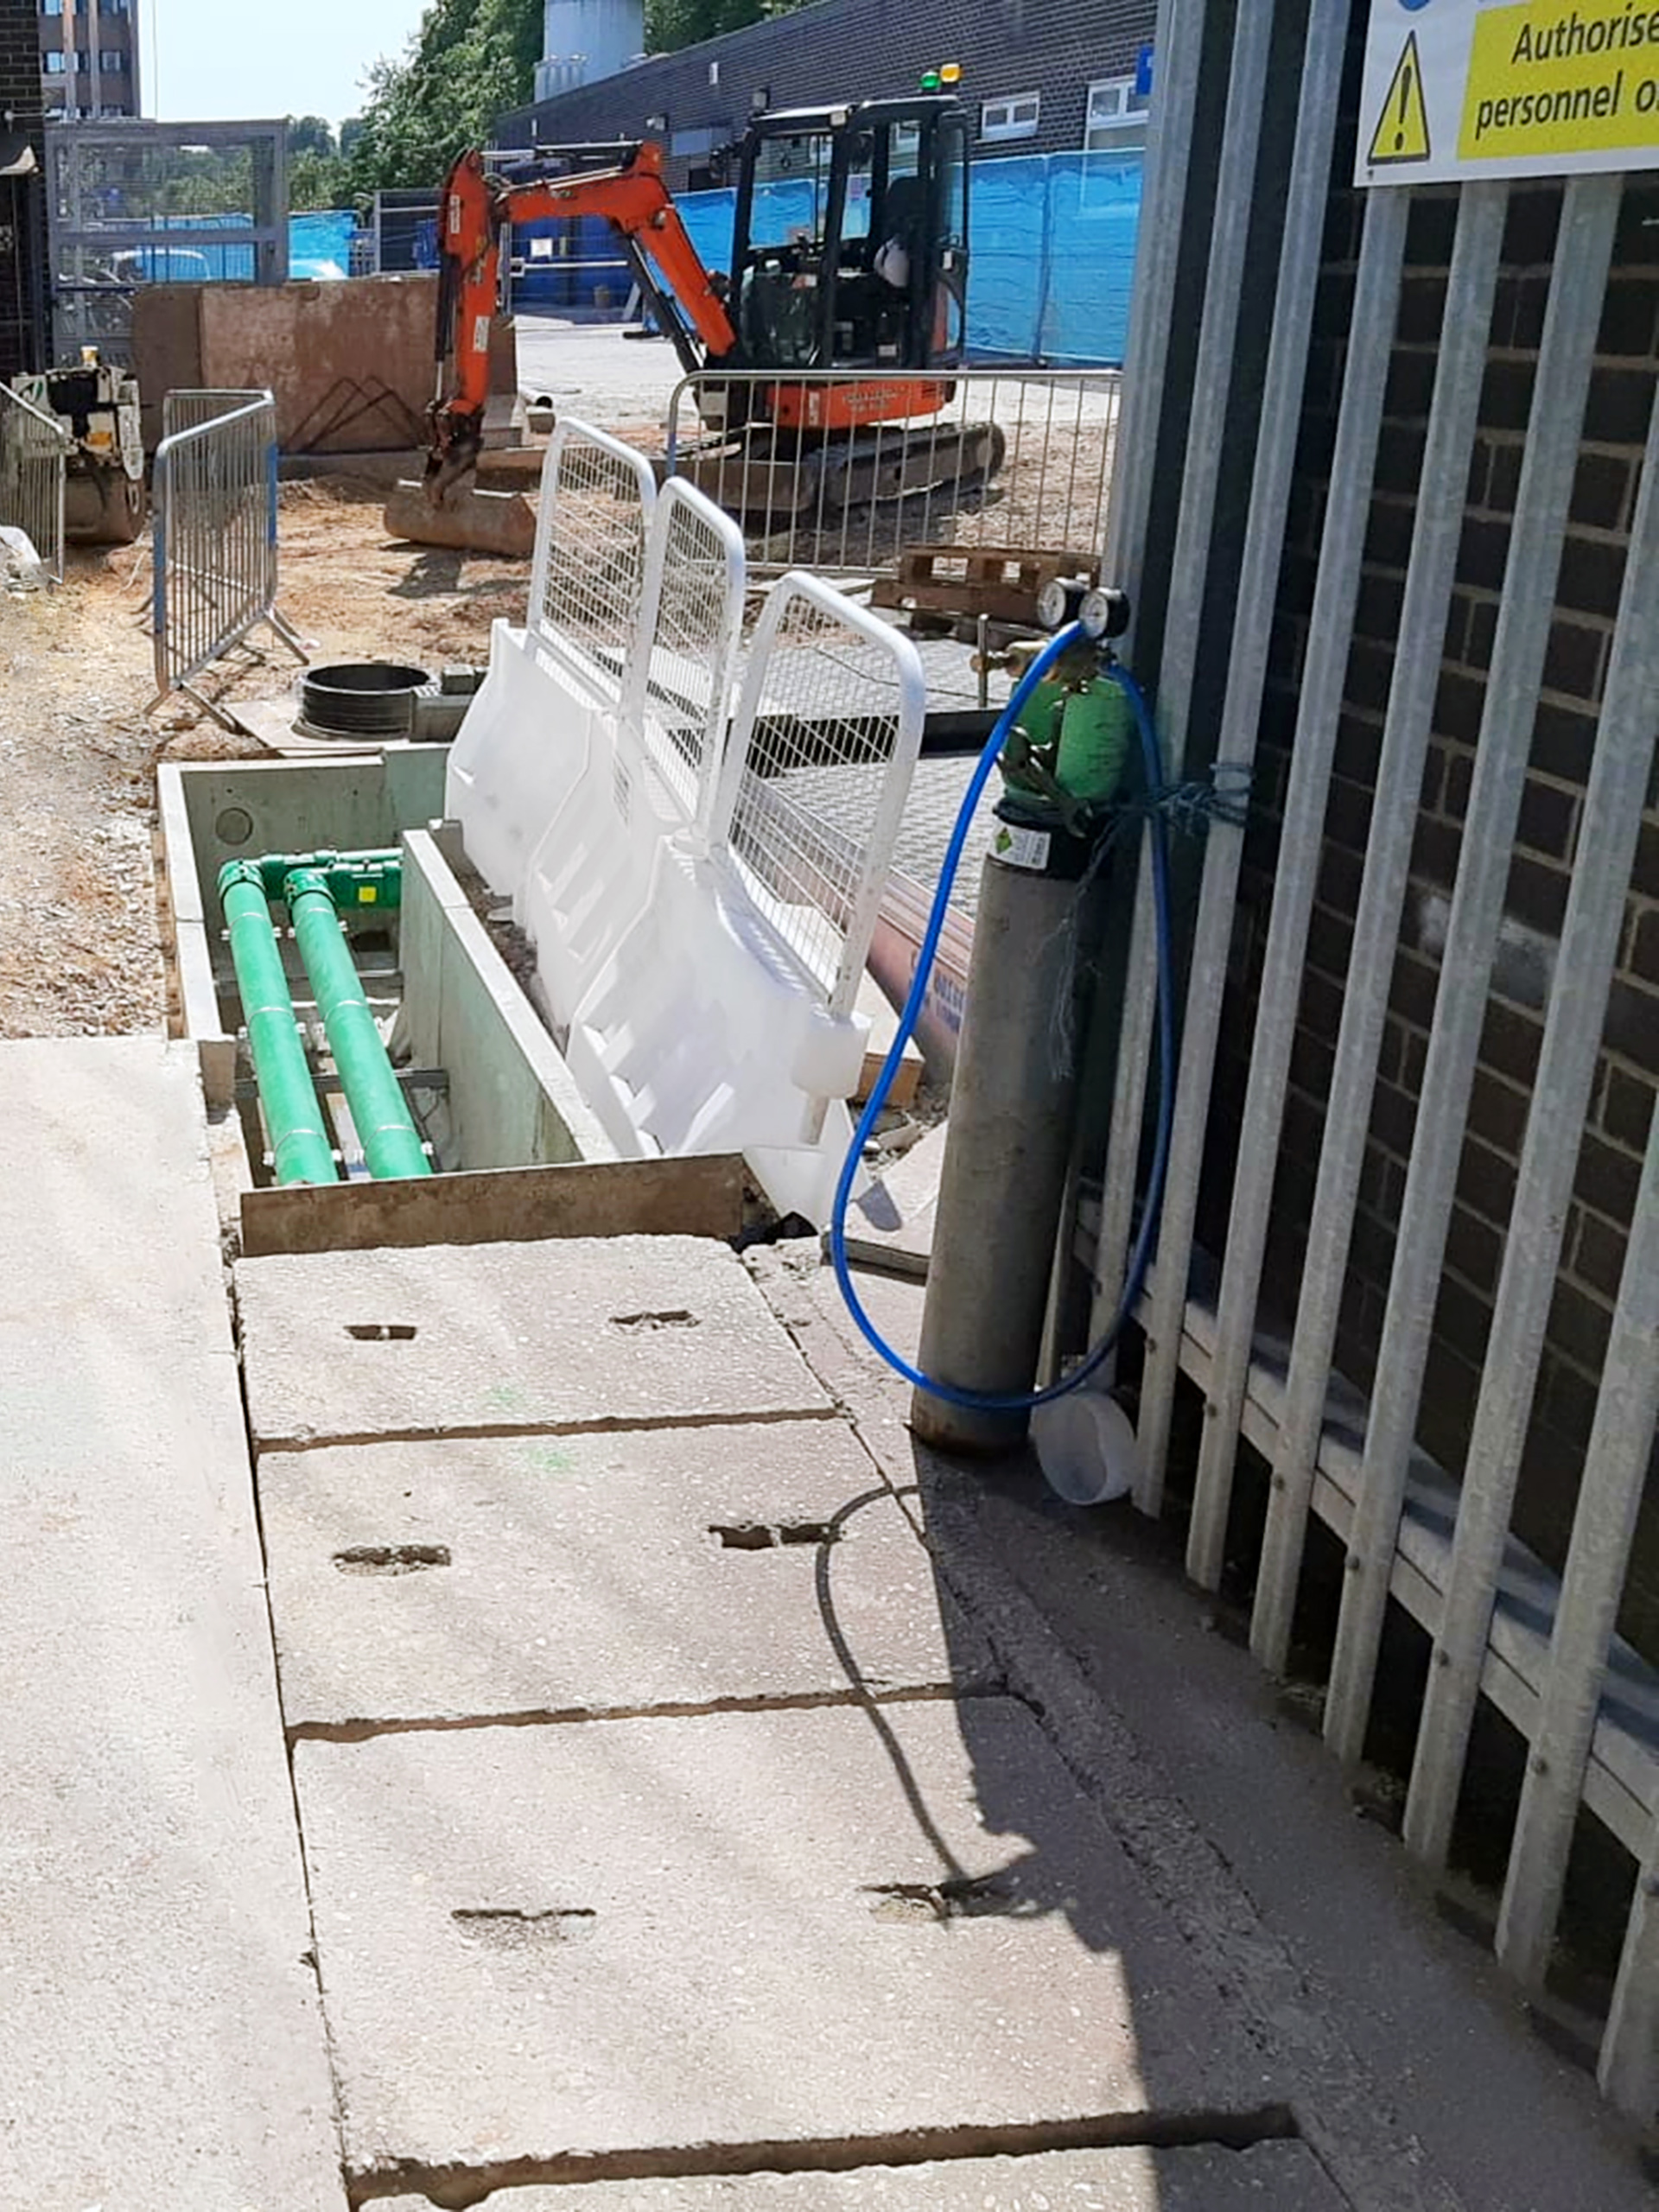 As the filling points were installed inside a garage building, a leak free zero permeation system was essential